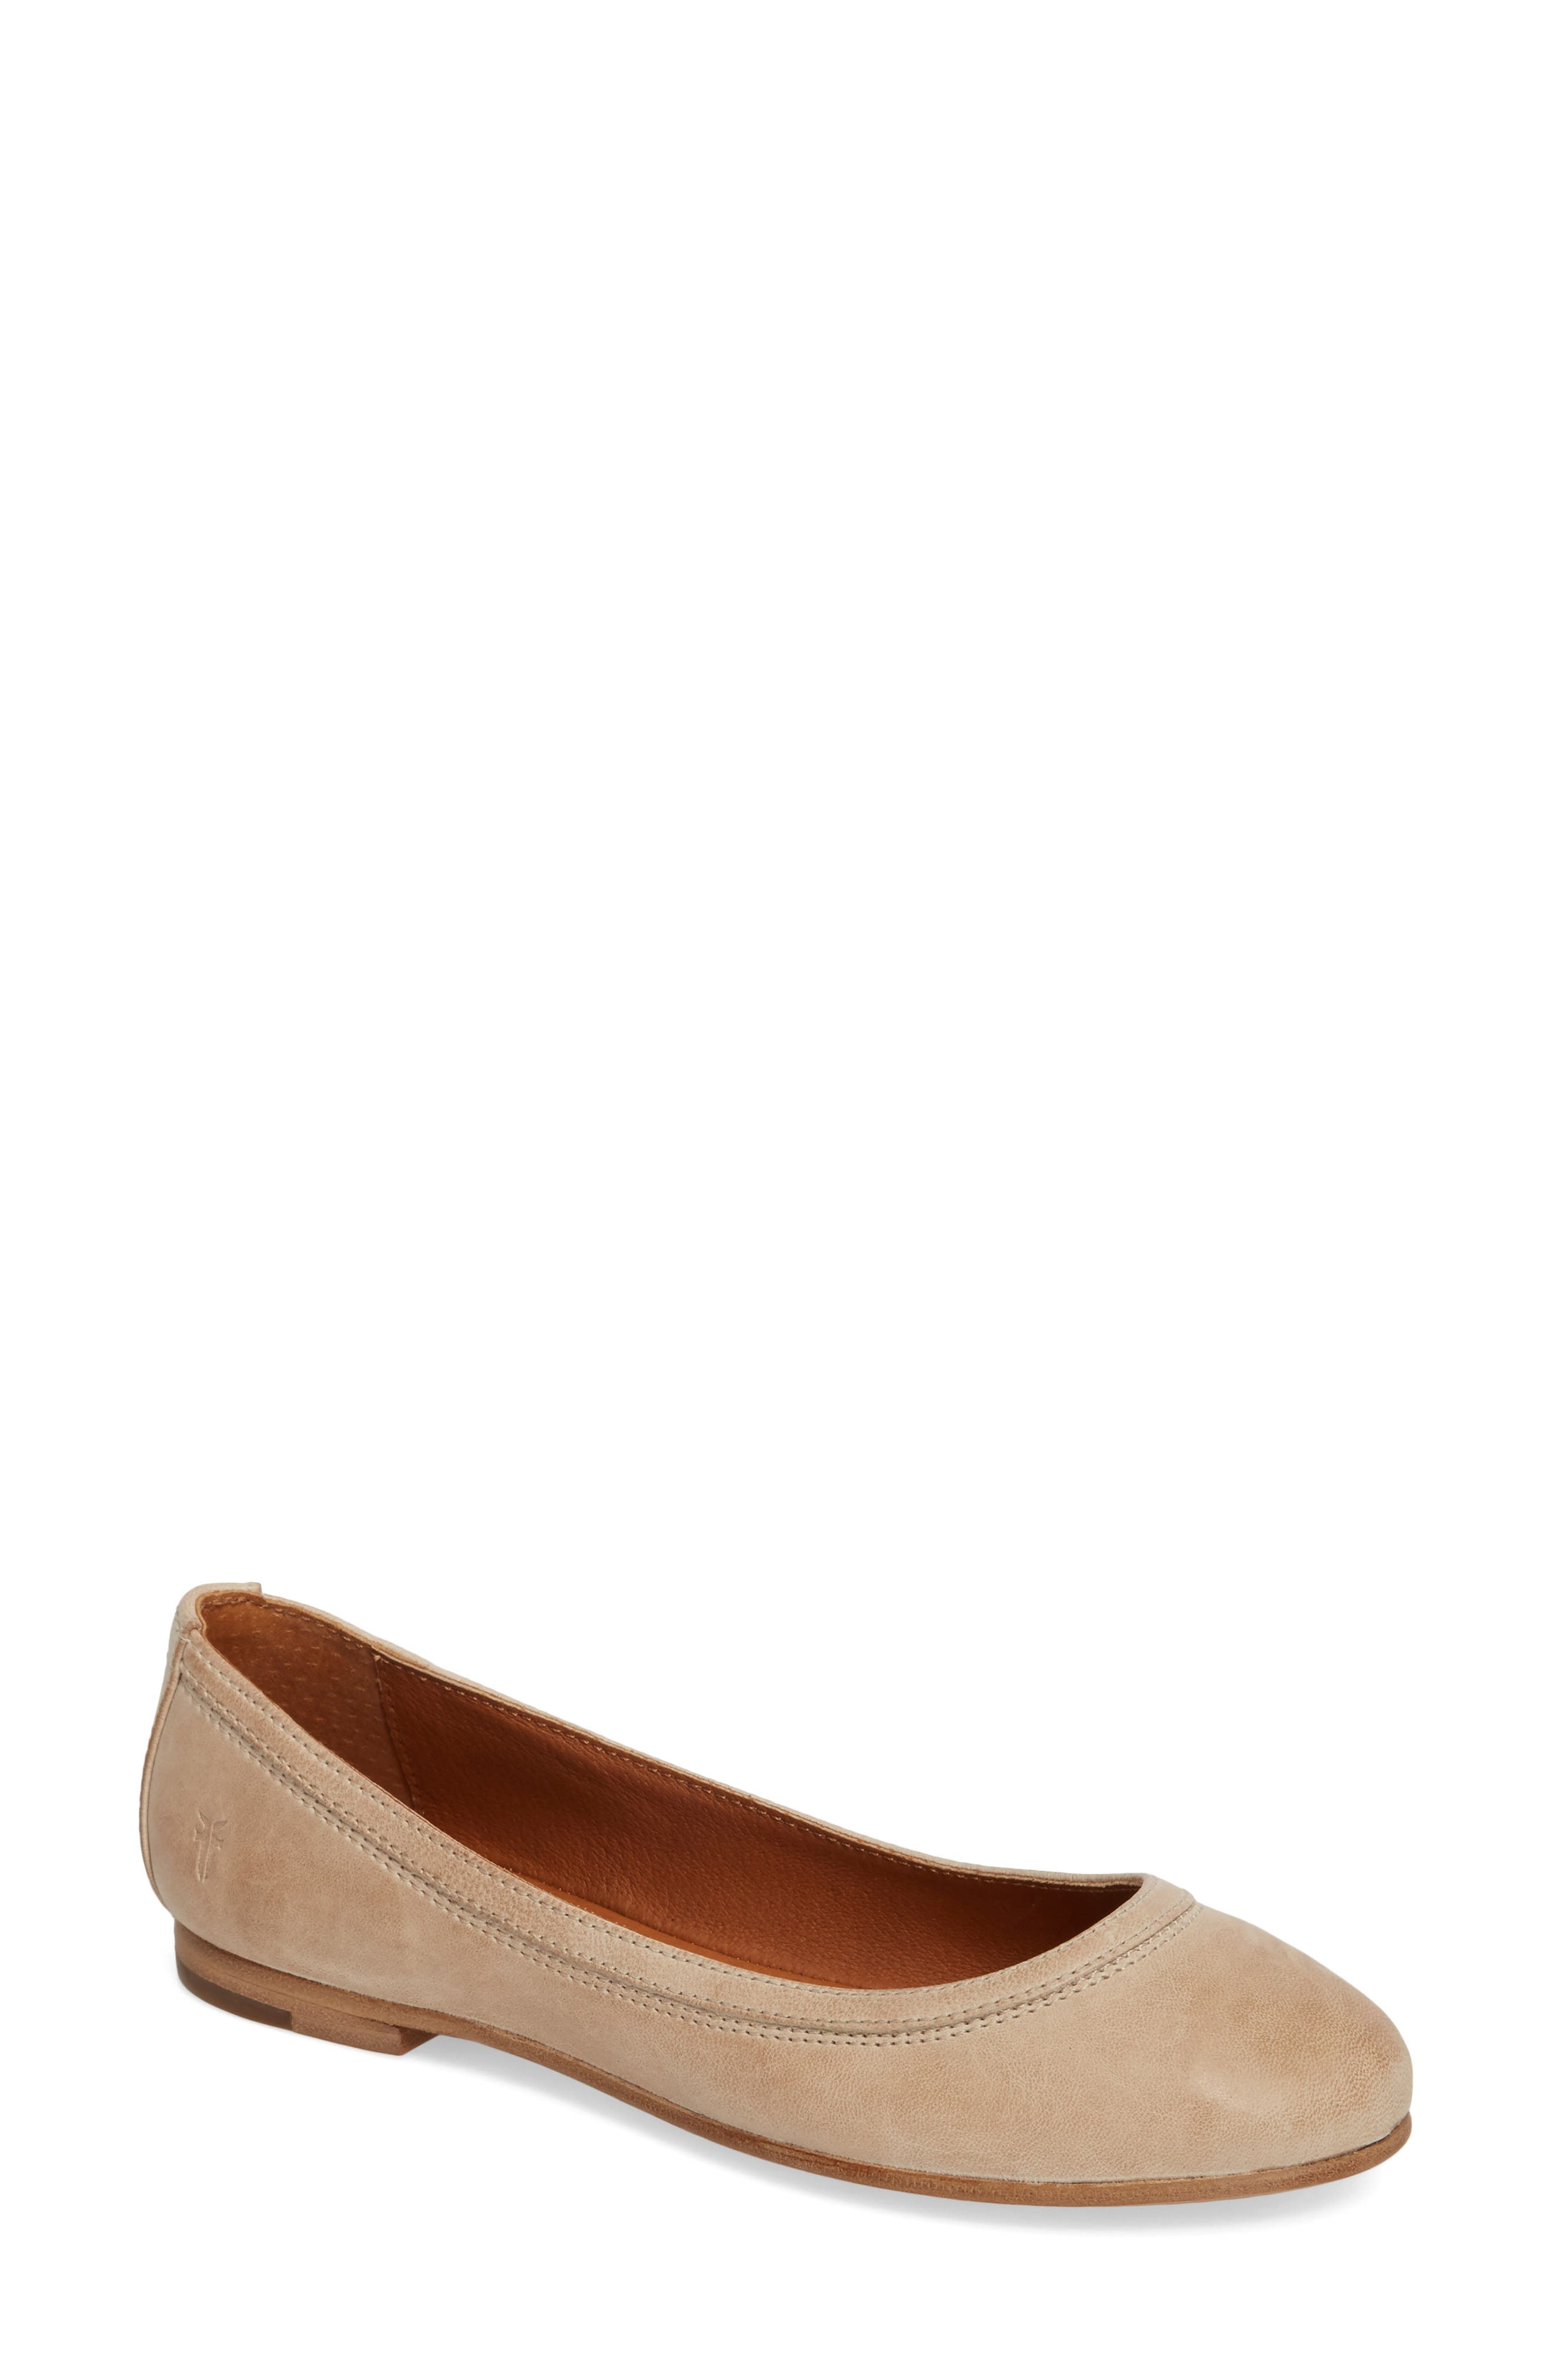 'Carson' Ballet Flat,                             Alternate thumbnail 2, color,                             CREAM LEATHER